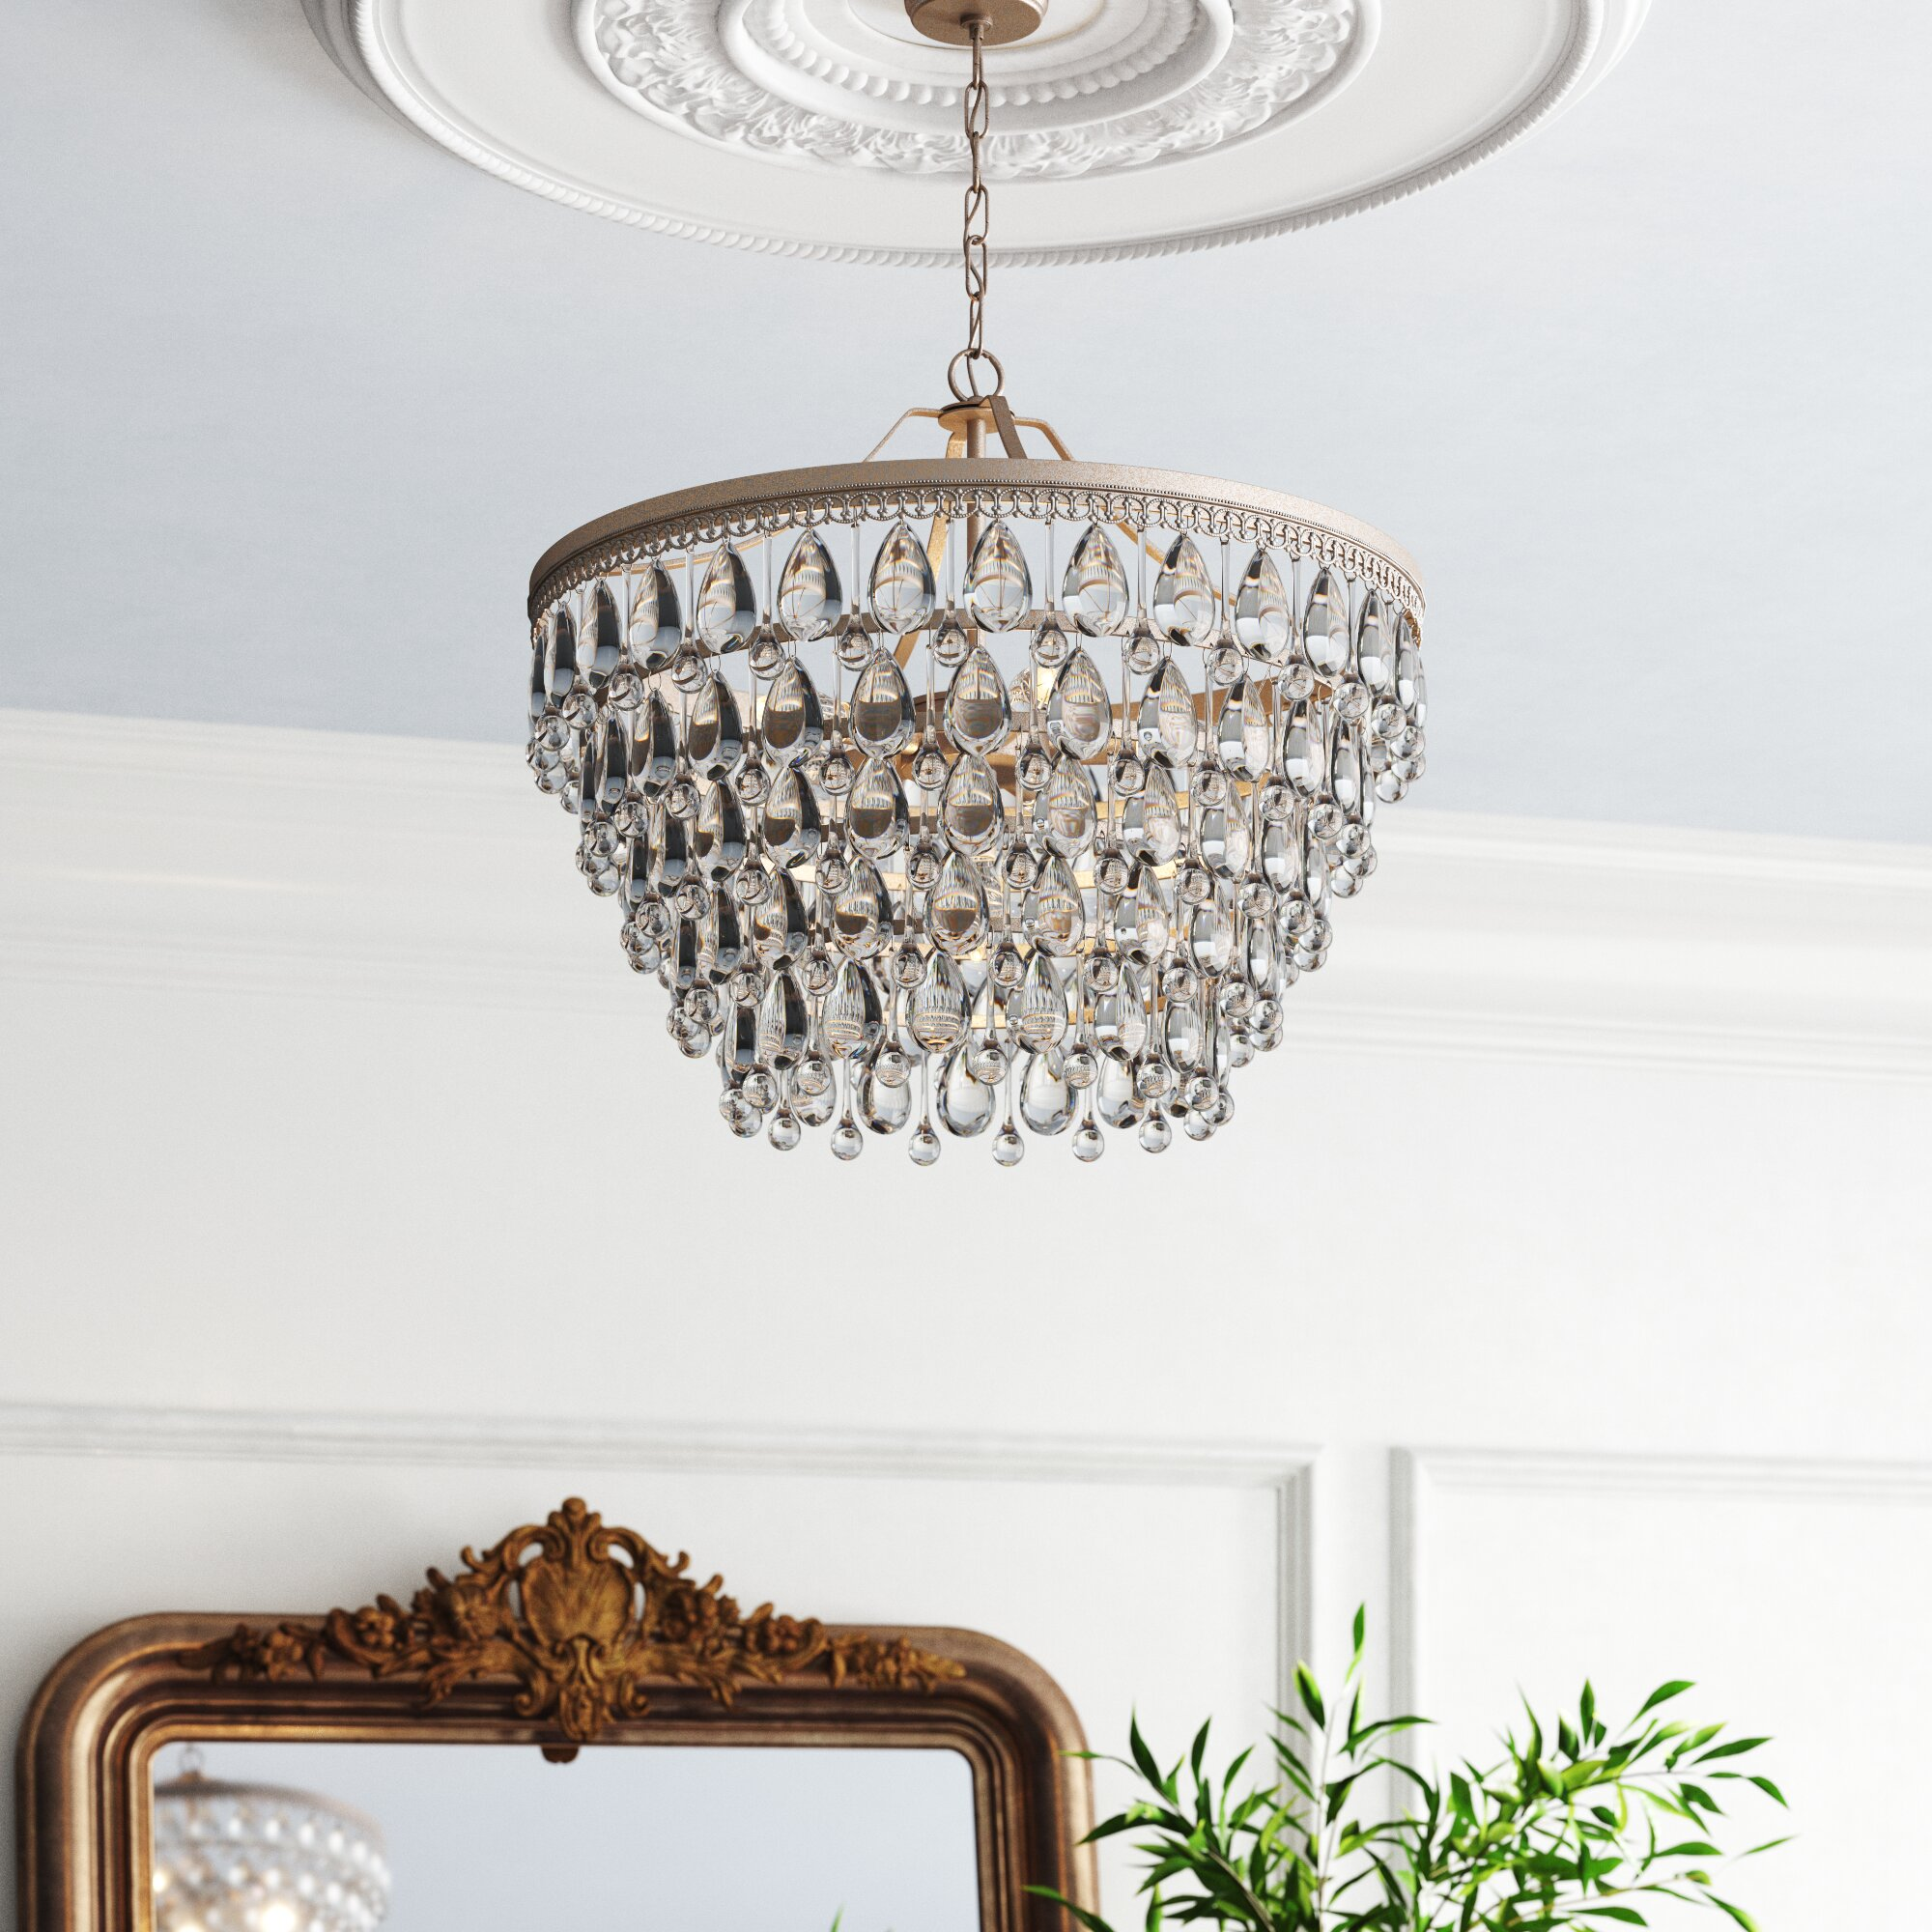 Kelly Clarkson Home Camille 6 Light Unique Statement Tiered Chandelier With Crystal Accents Reviews Wayfair